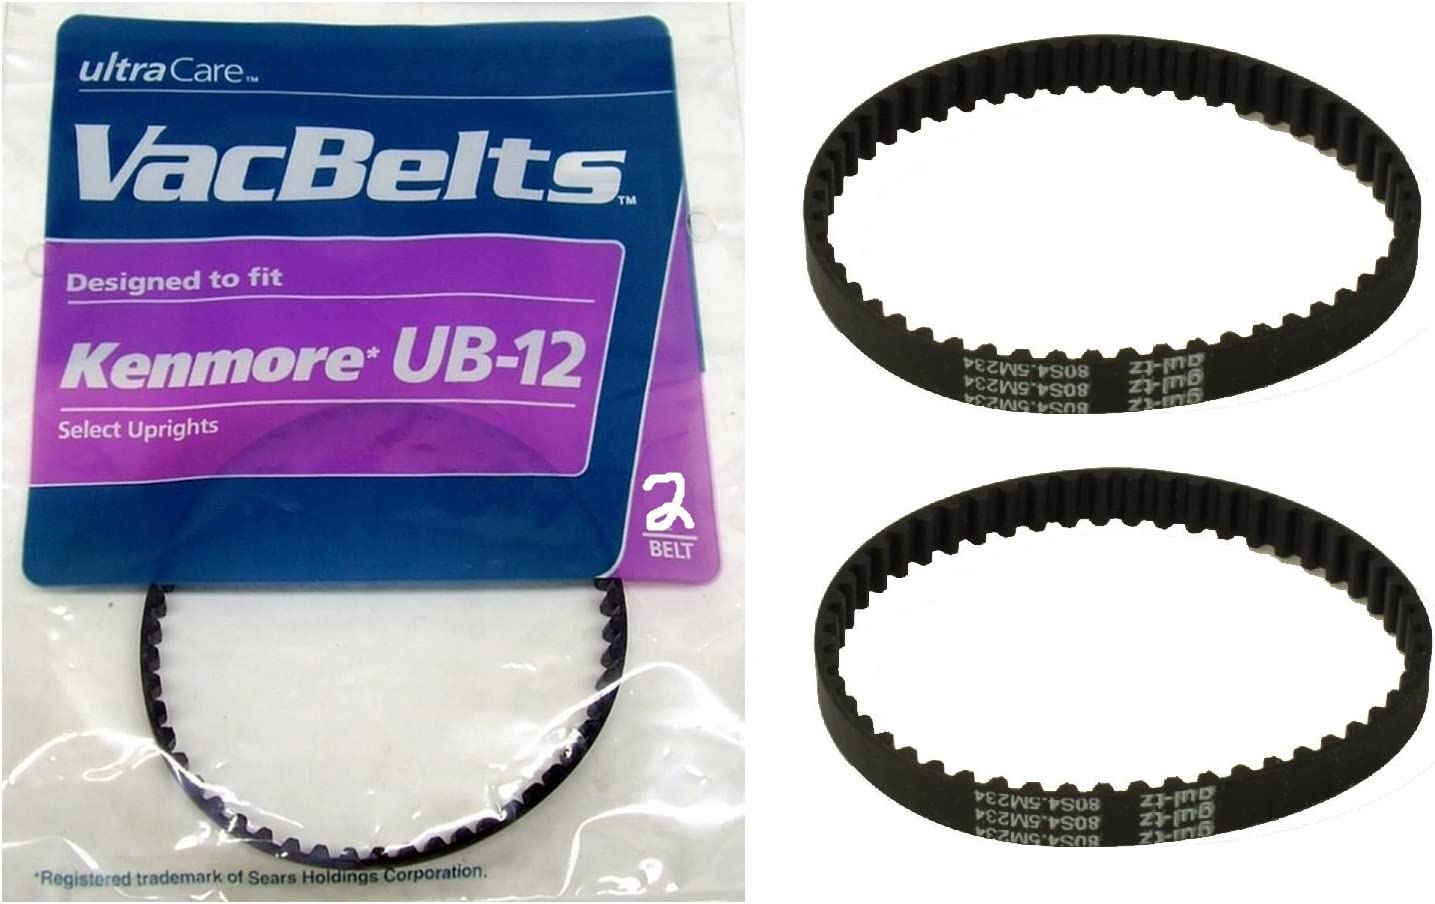 Ultracare VacBelts Replacement for UB-12 Vacuum Belt (Pack of 2)